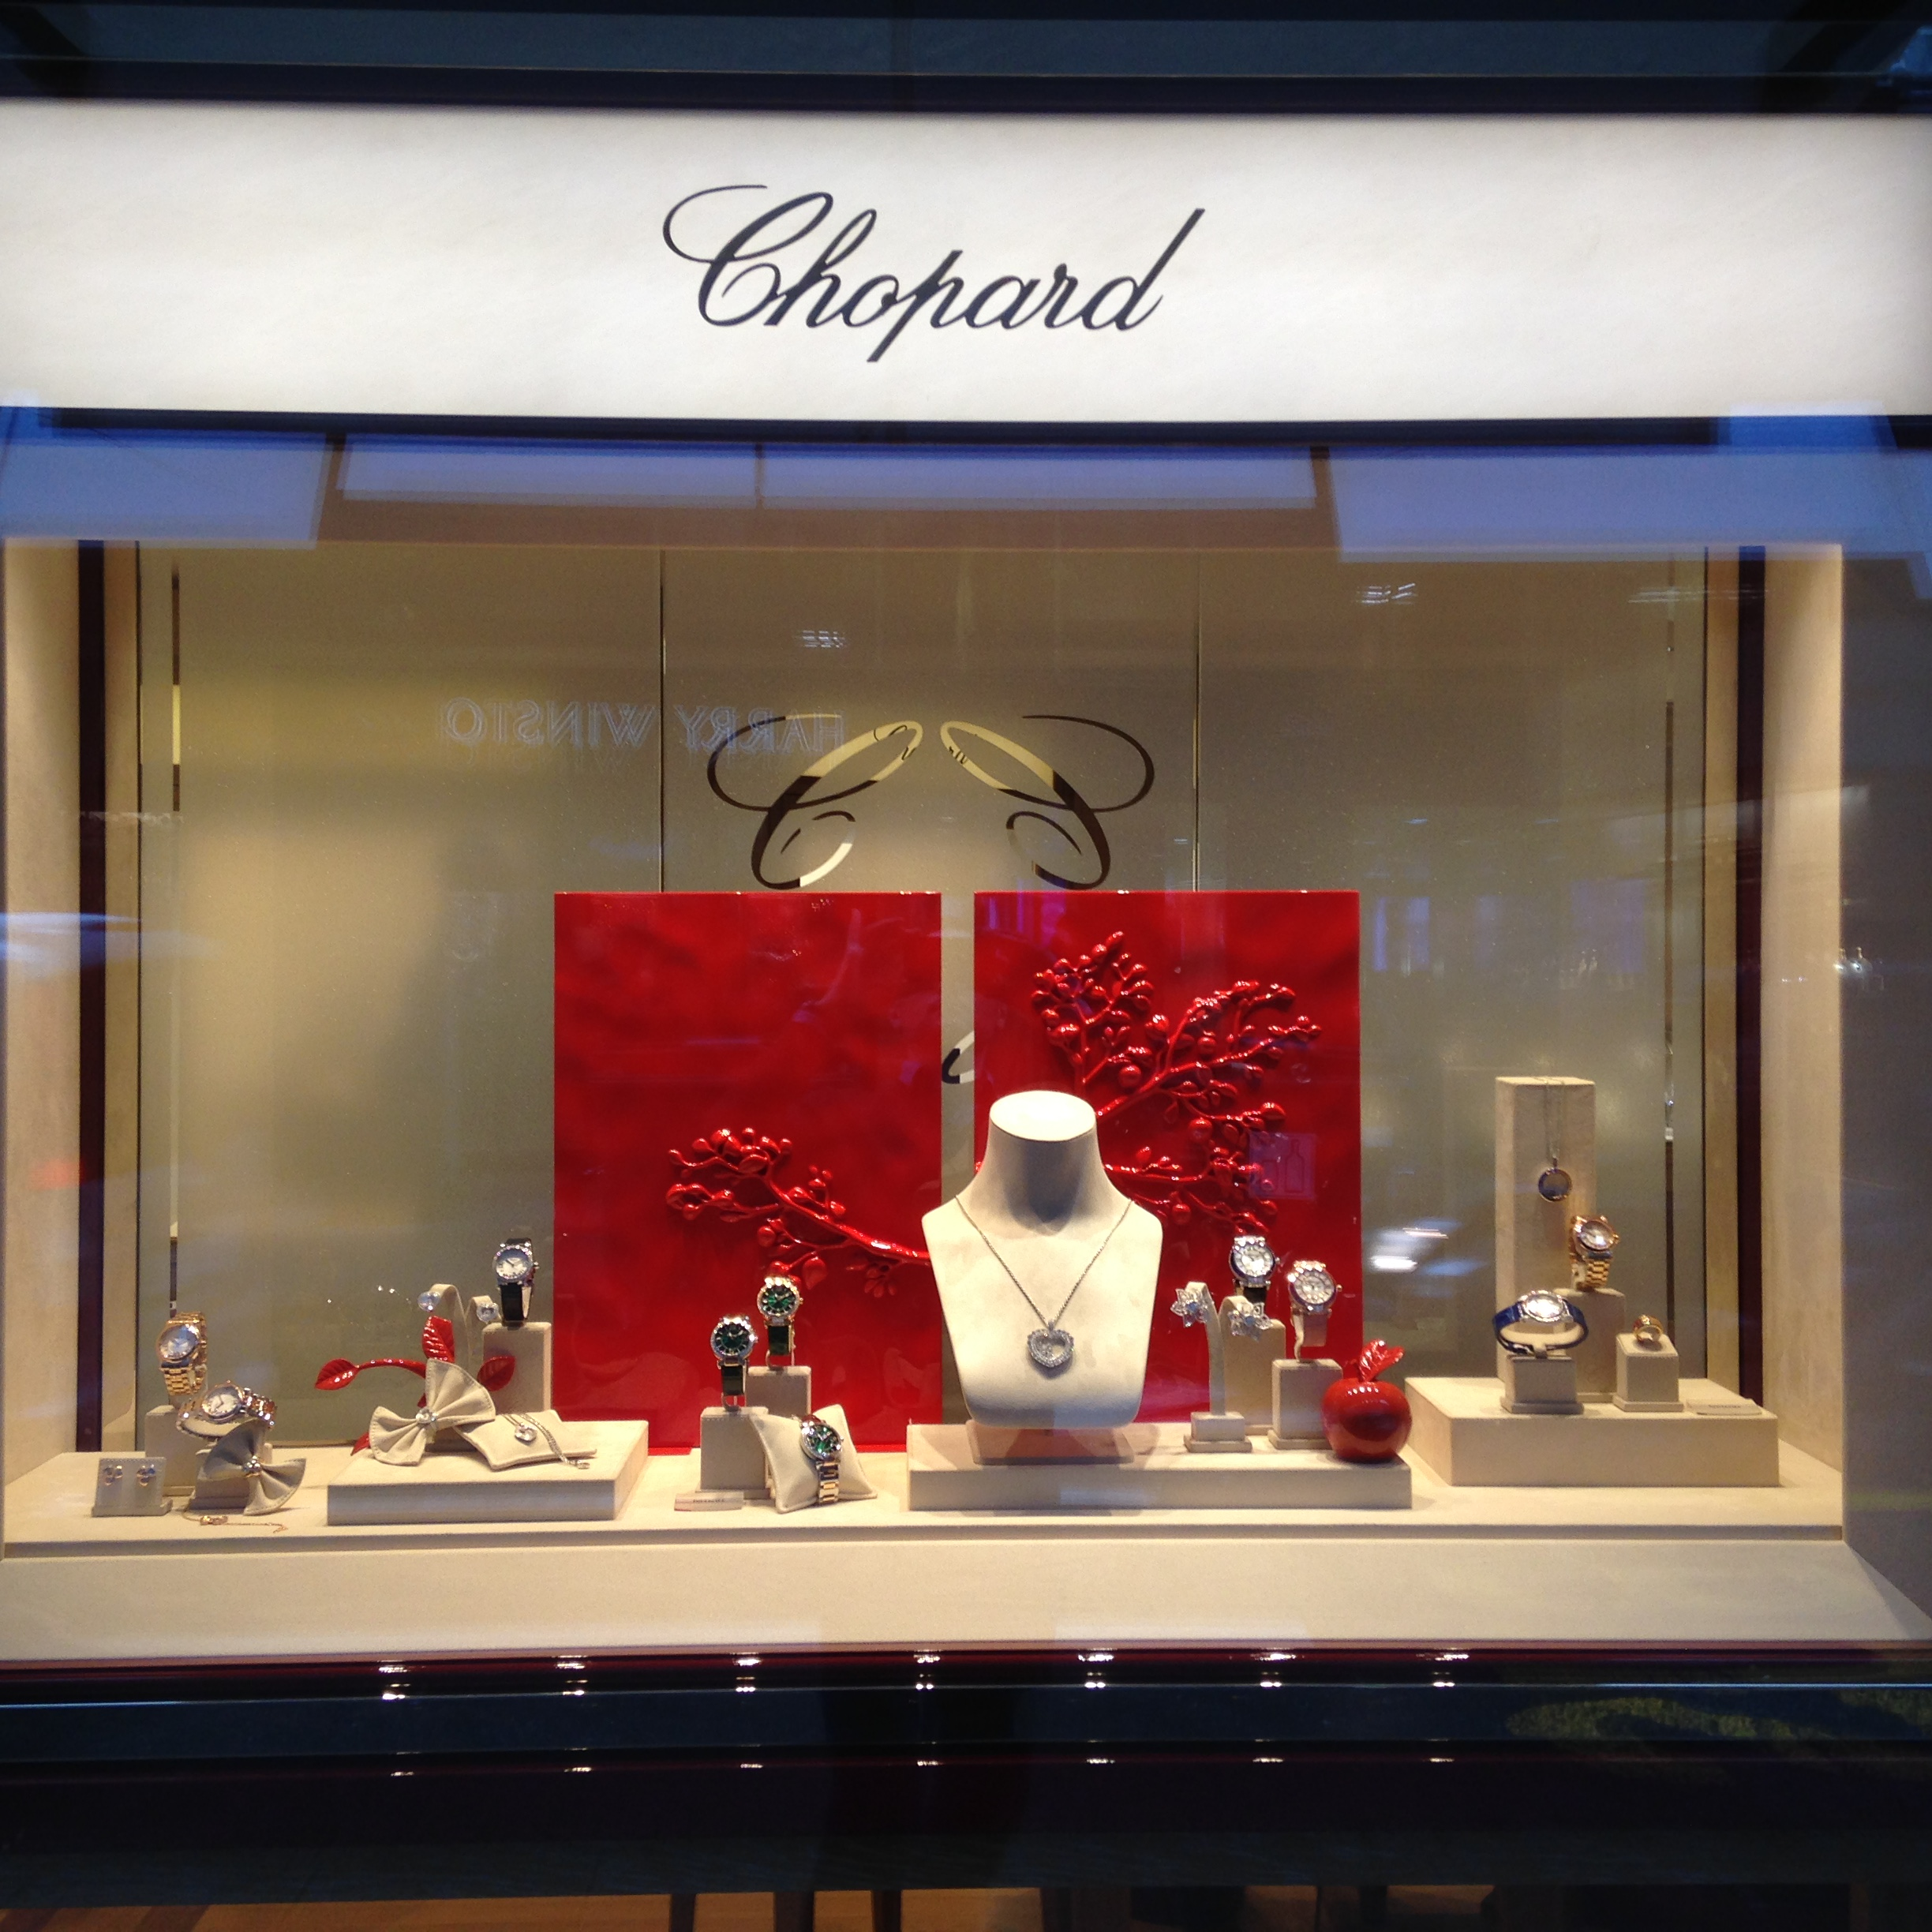 Jewelry display setting for the Valentines Day window of the Chopard jewelry store in Geneva.